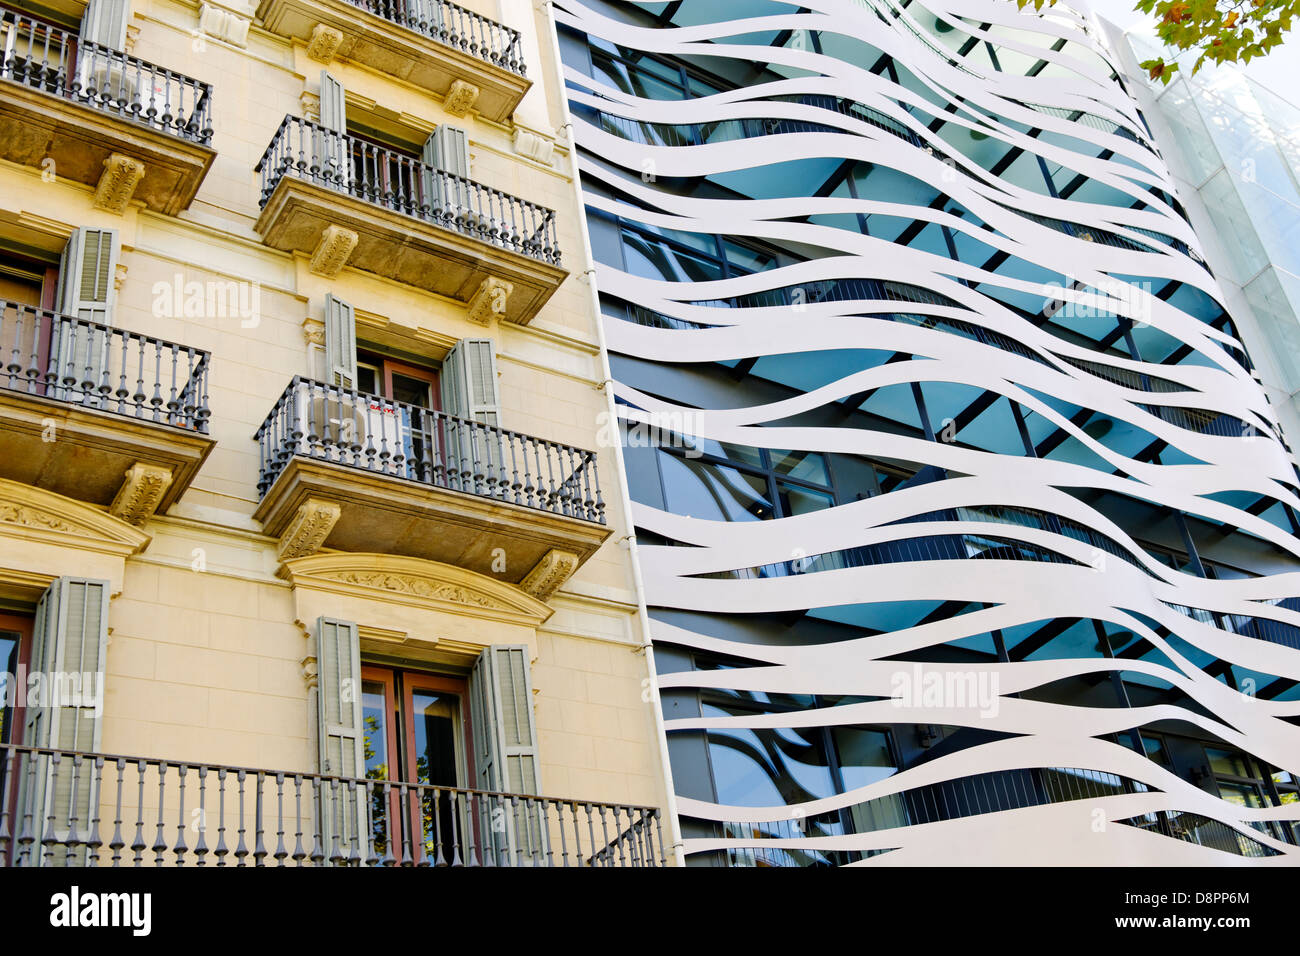 Modern Architecture modern architecture barcelona spain stock photos & modern